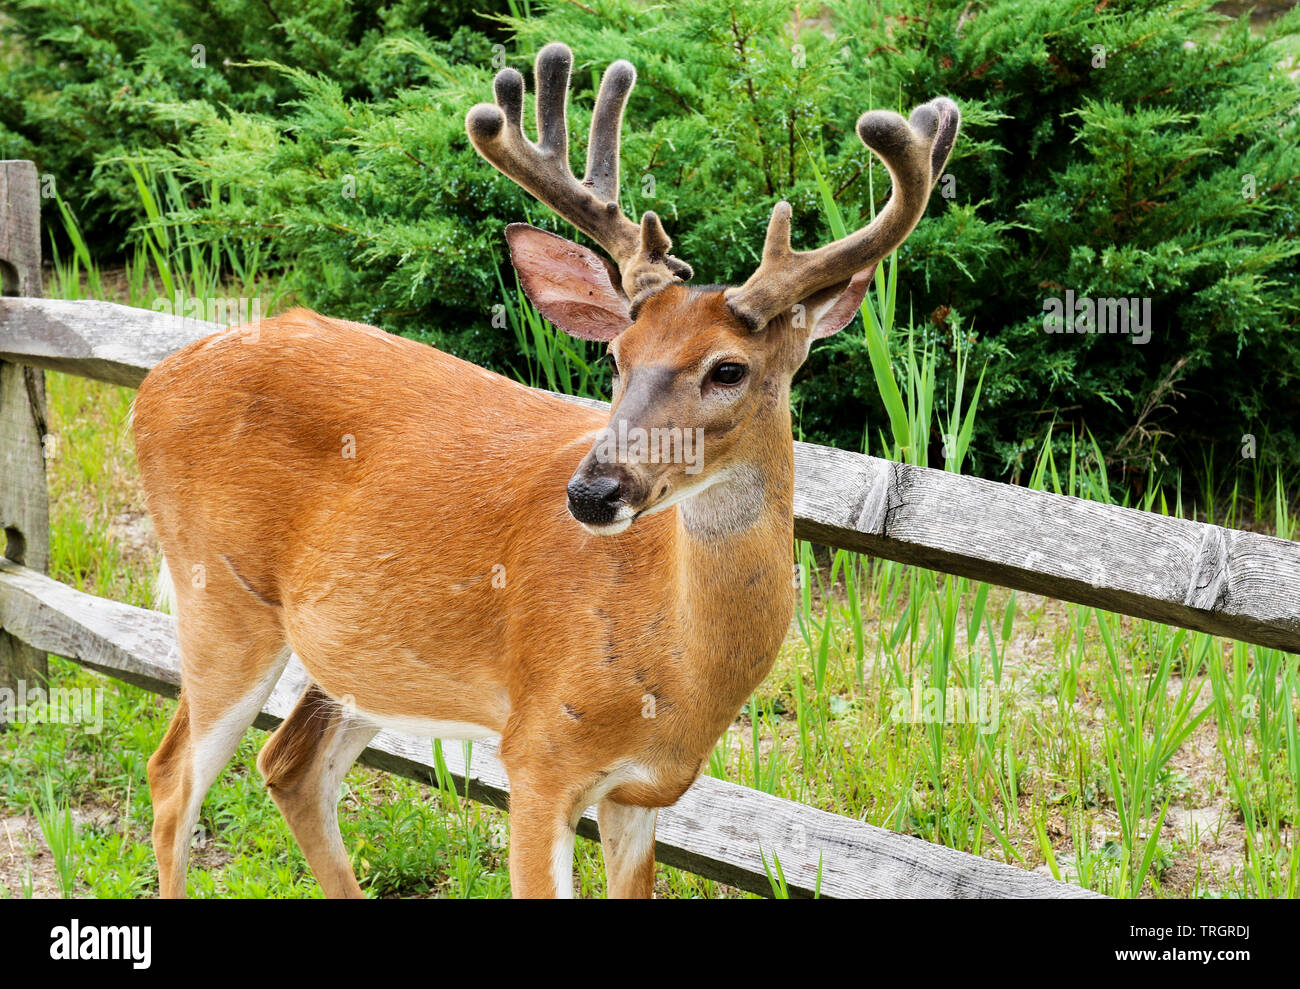 A close up of a male deer rooming the streets of Fire Island National Sea Shore communities. Stock Photo